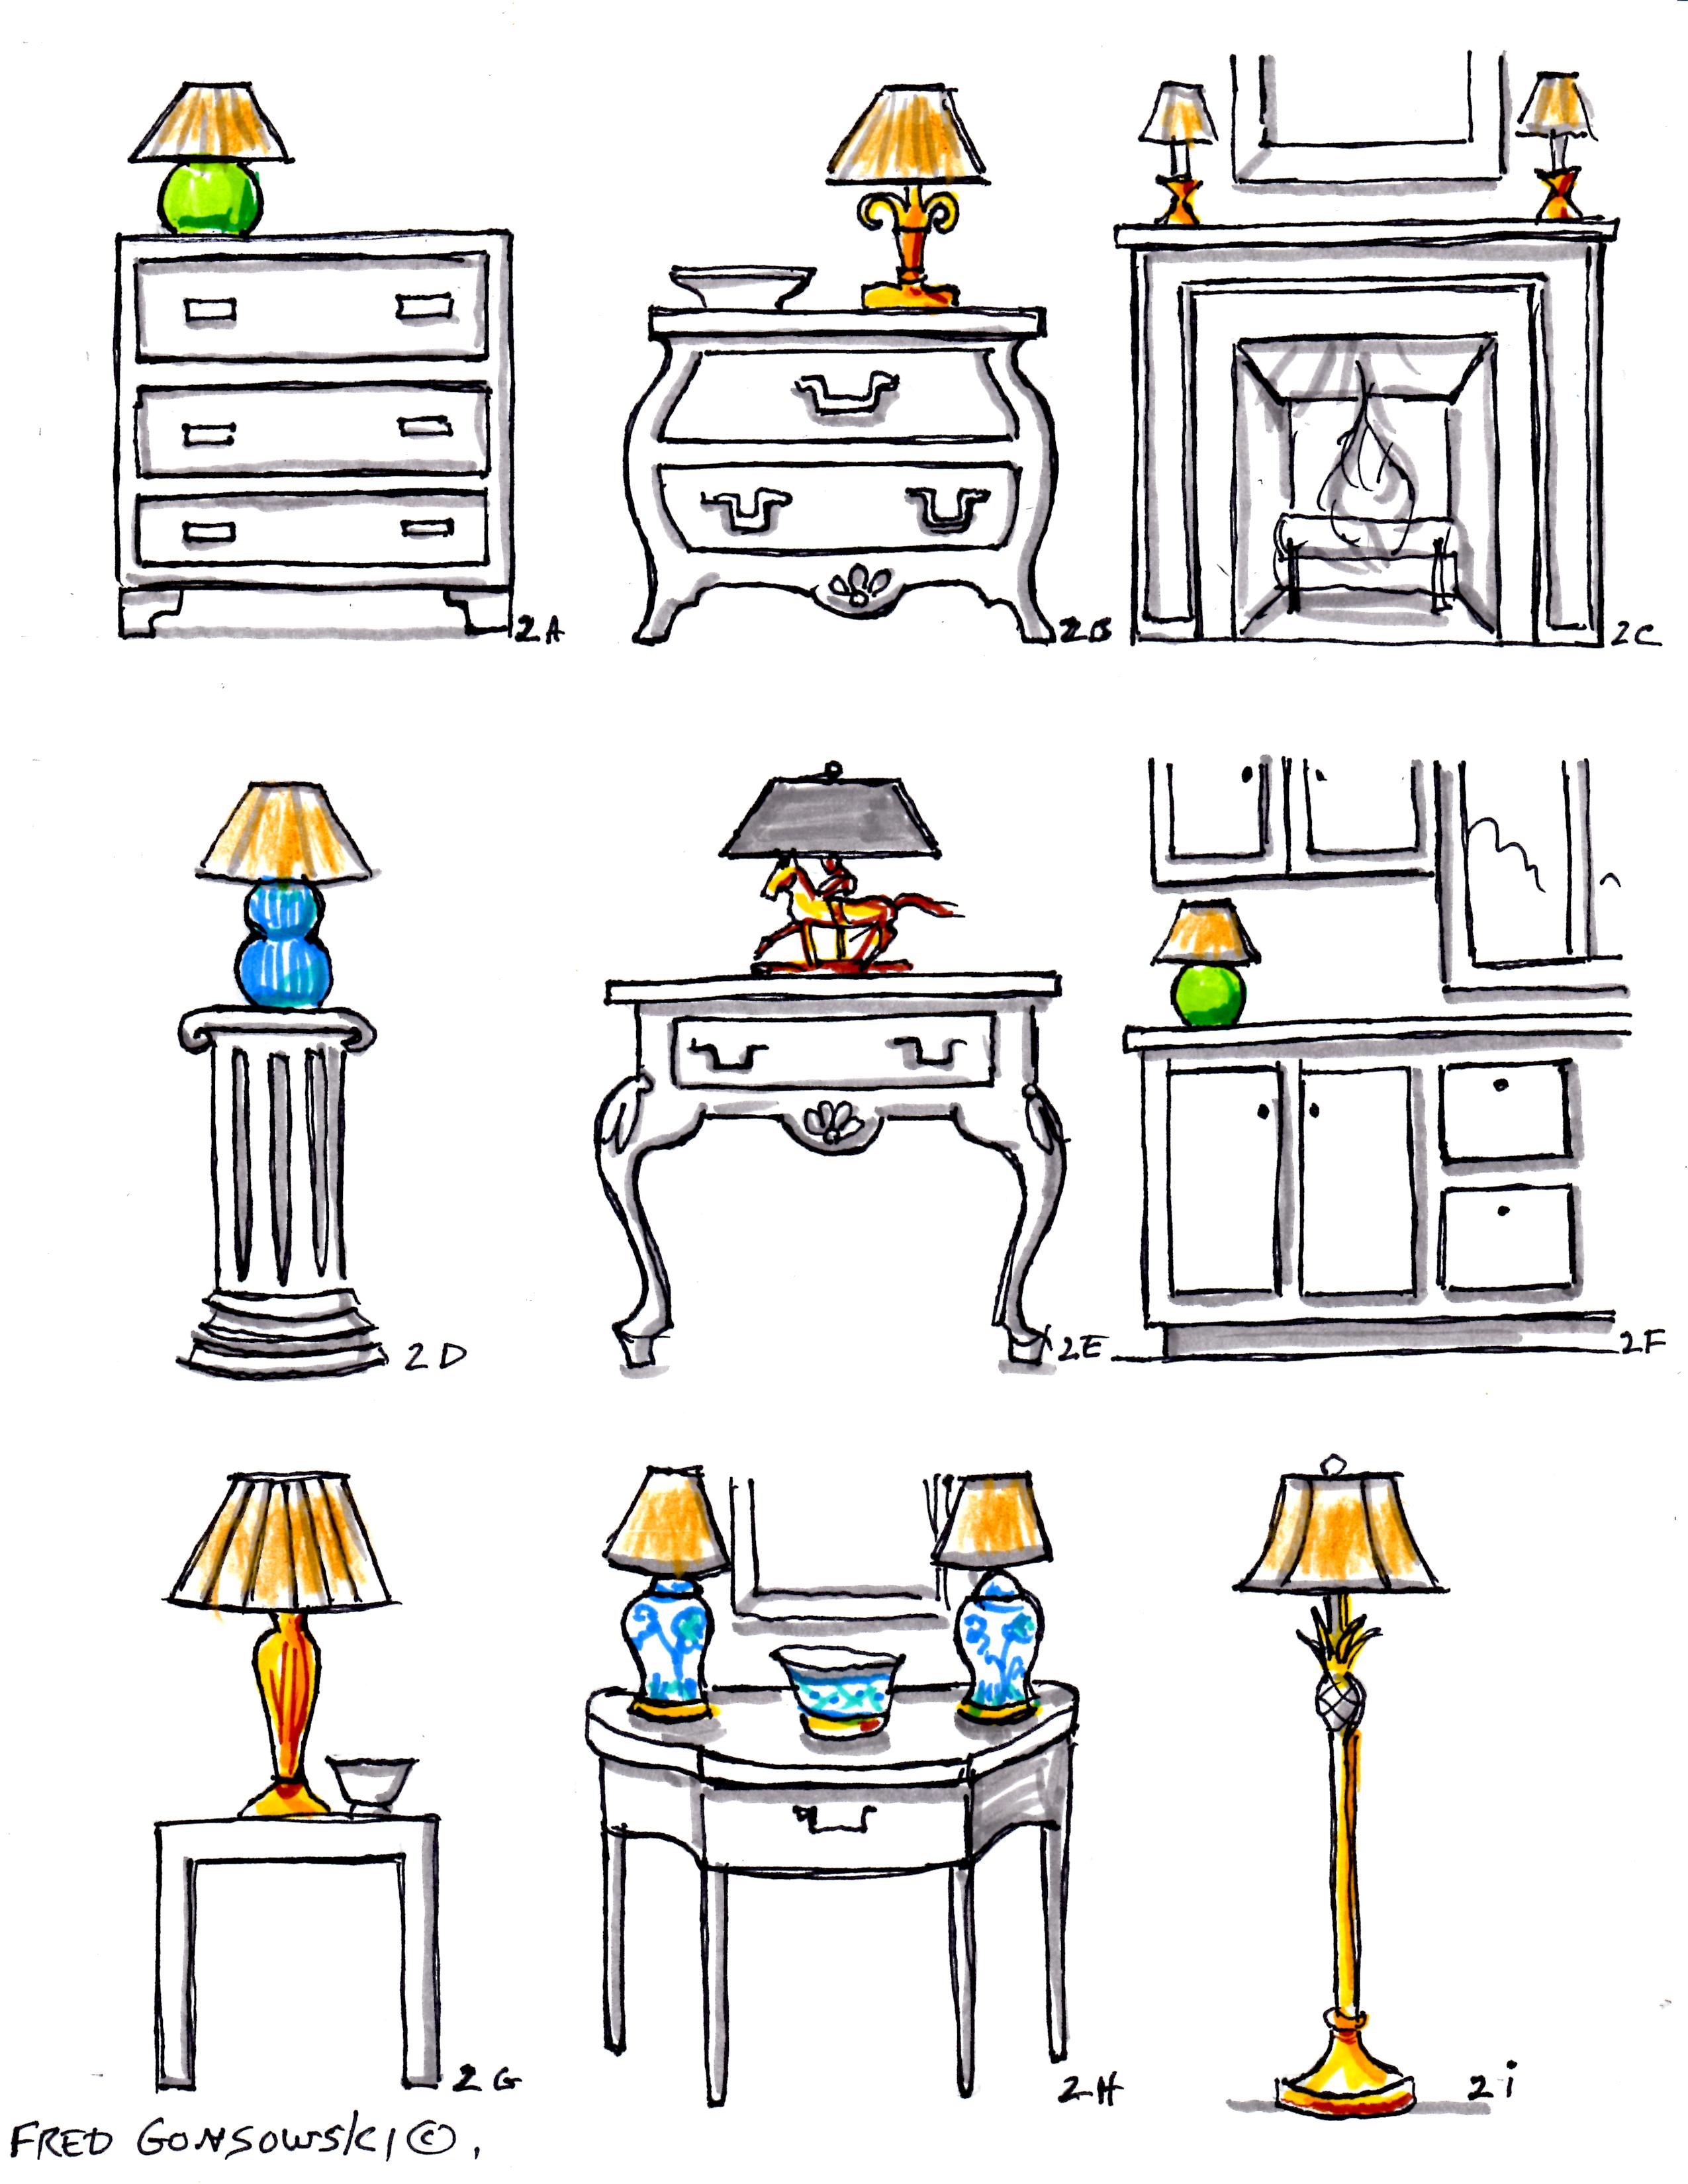 how tall should a table lamp be next to sofa ottoman king single bed interior decorating with accent lamps fred gonsowski